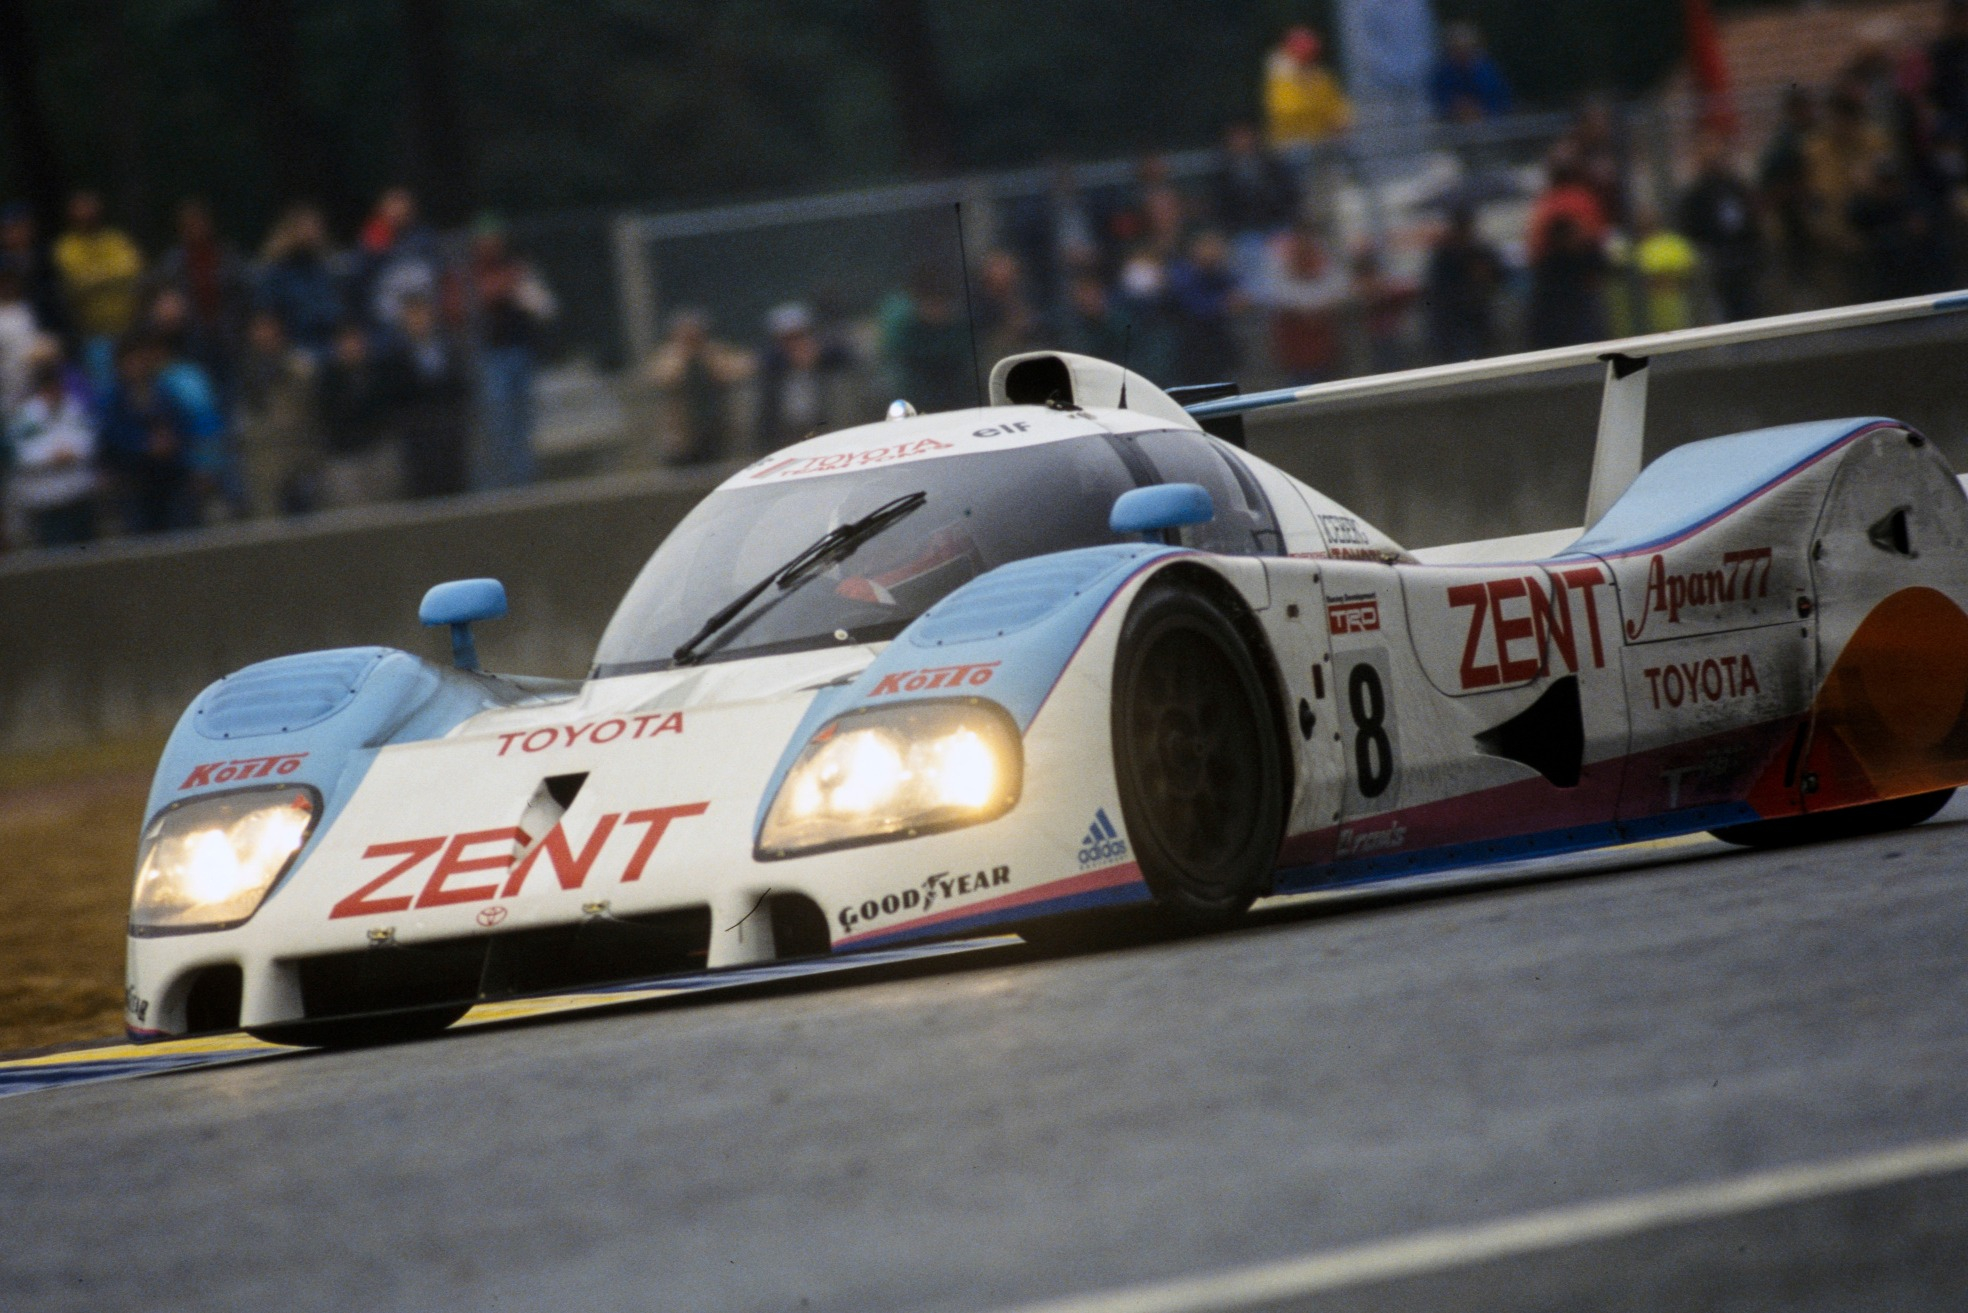 Former Jaguar team-mates Lammers and Wallace teamed up again to drive for Toyota - even with its 3.5-litre F1-spec engine, a far cry from racing in F1 itself